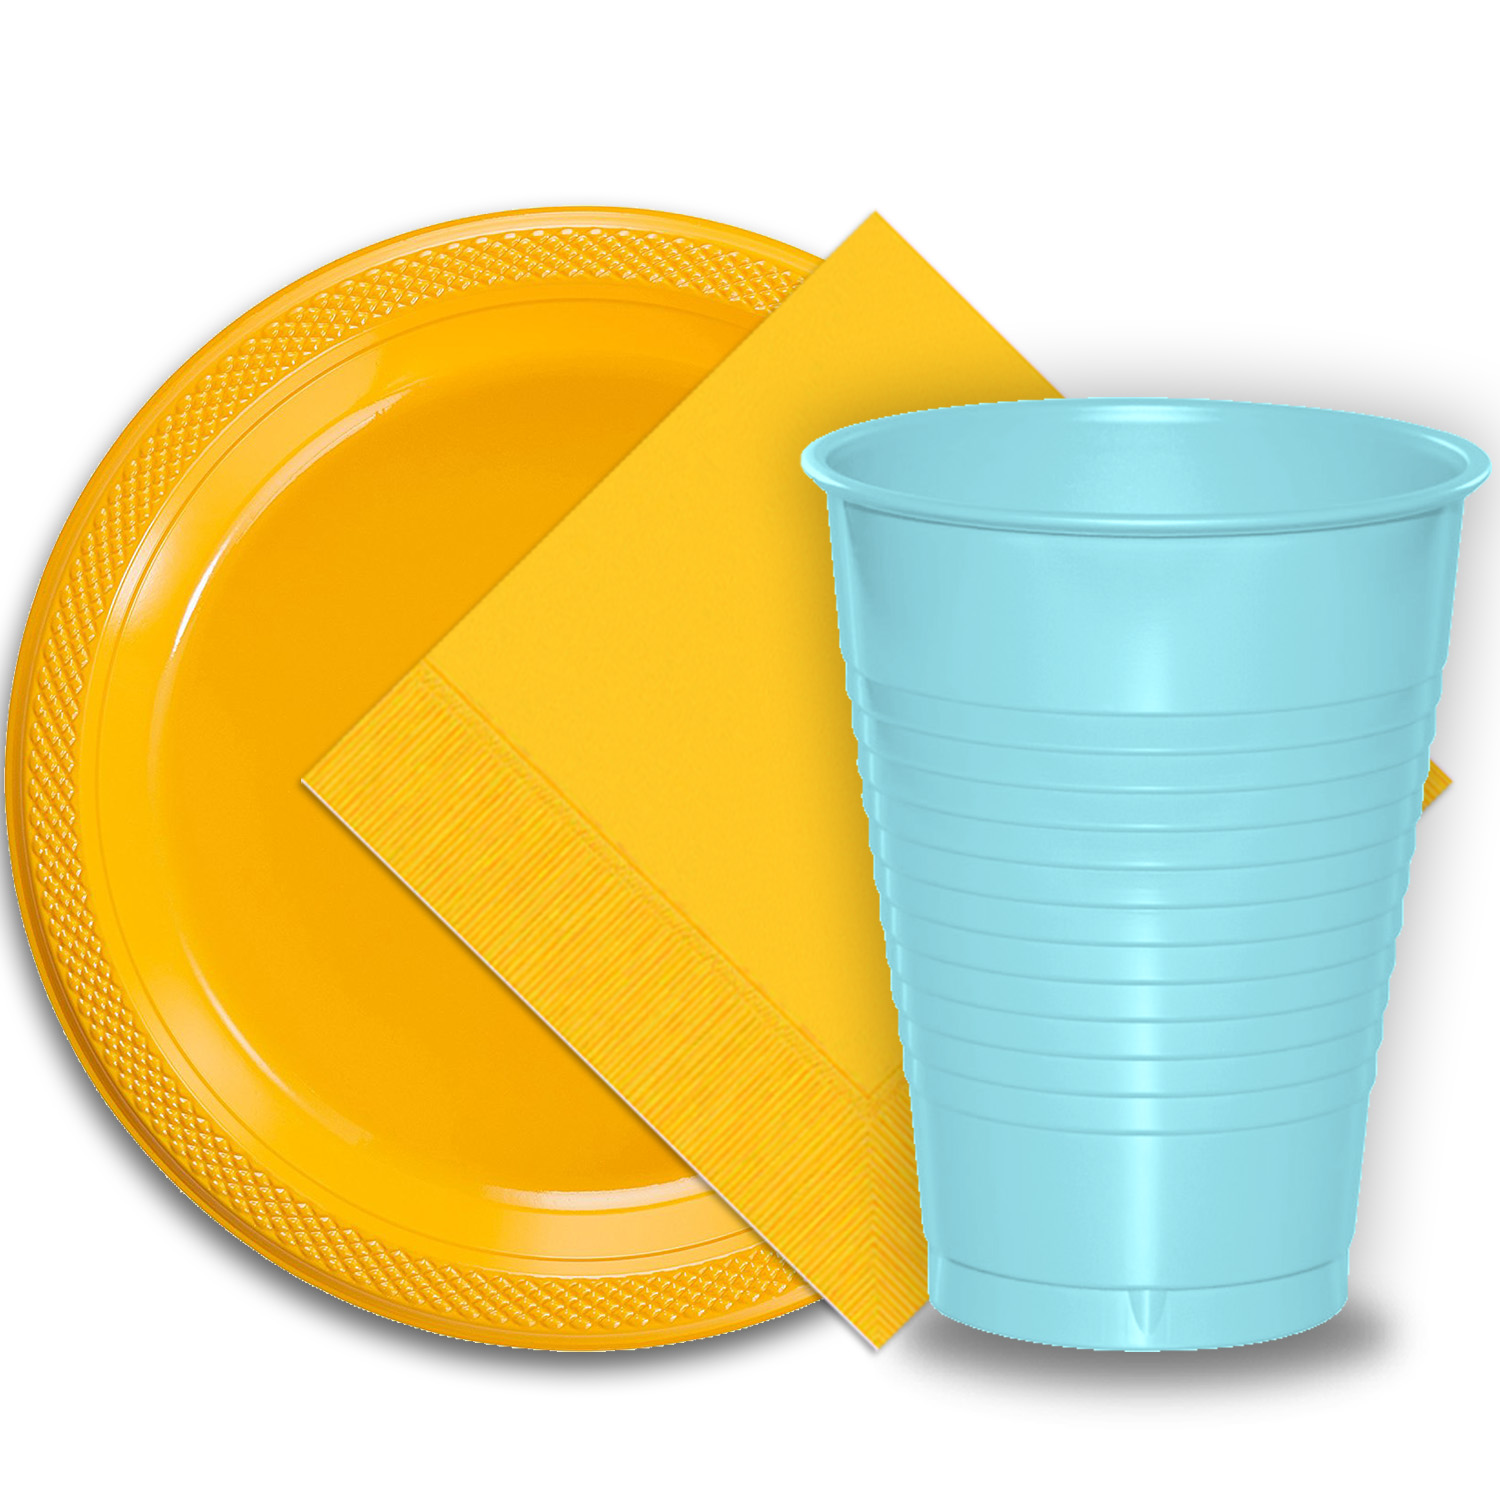 "50 Yellow Plastic Plates (9""), 50 Light Blue Plastic Cups (12 oz.), and 50 Yellow Paper Napkins, Dazzelling Colored Disposable Party Supplies Tableware Set for Fifty Guests."